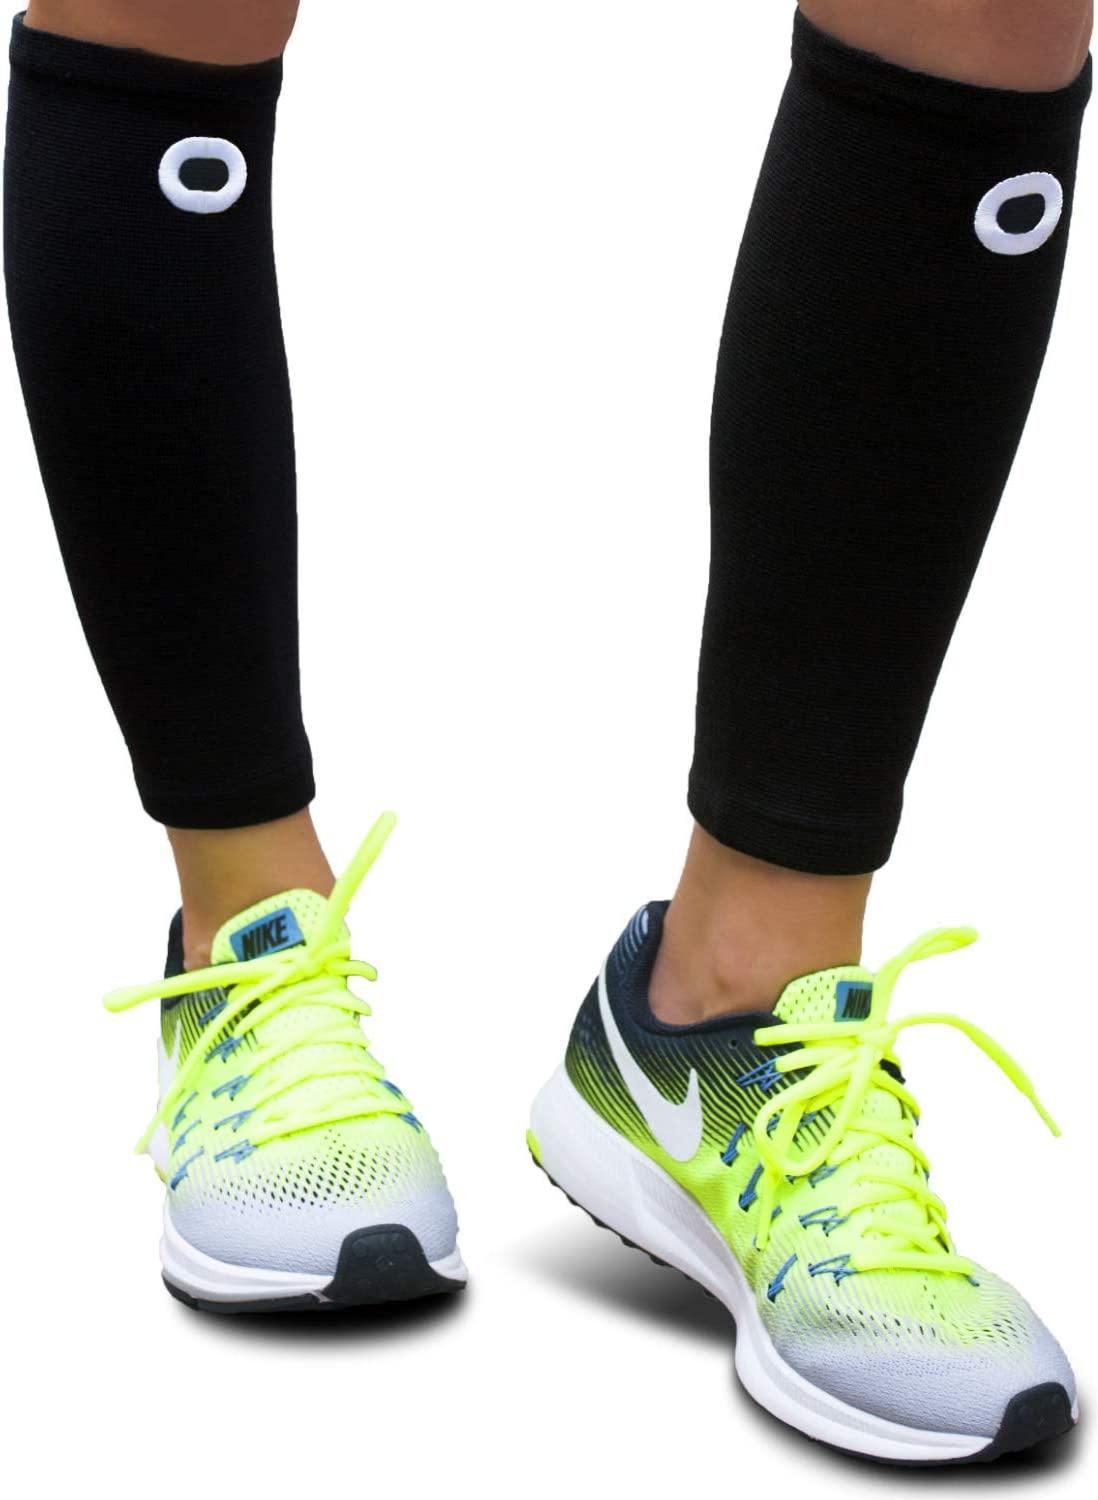 Crucial Compression Calf Sleeves for Men & Women (Pair) - Instant Shin Splint Support, Leg Cramps, Calf Pain Relief, Running, Circulation and Recovery Socks - Premium Compression Sleeve for Calves : Health & Household